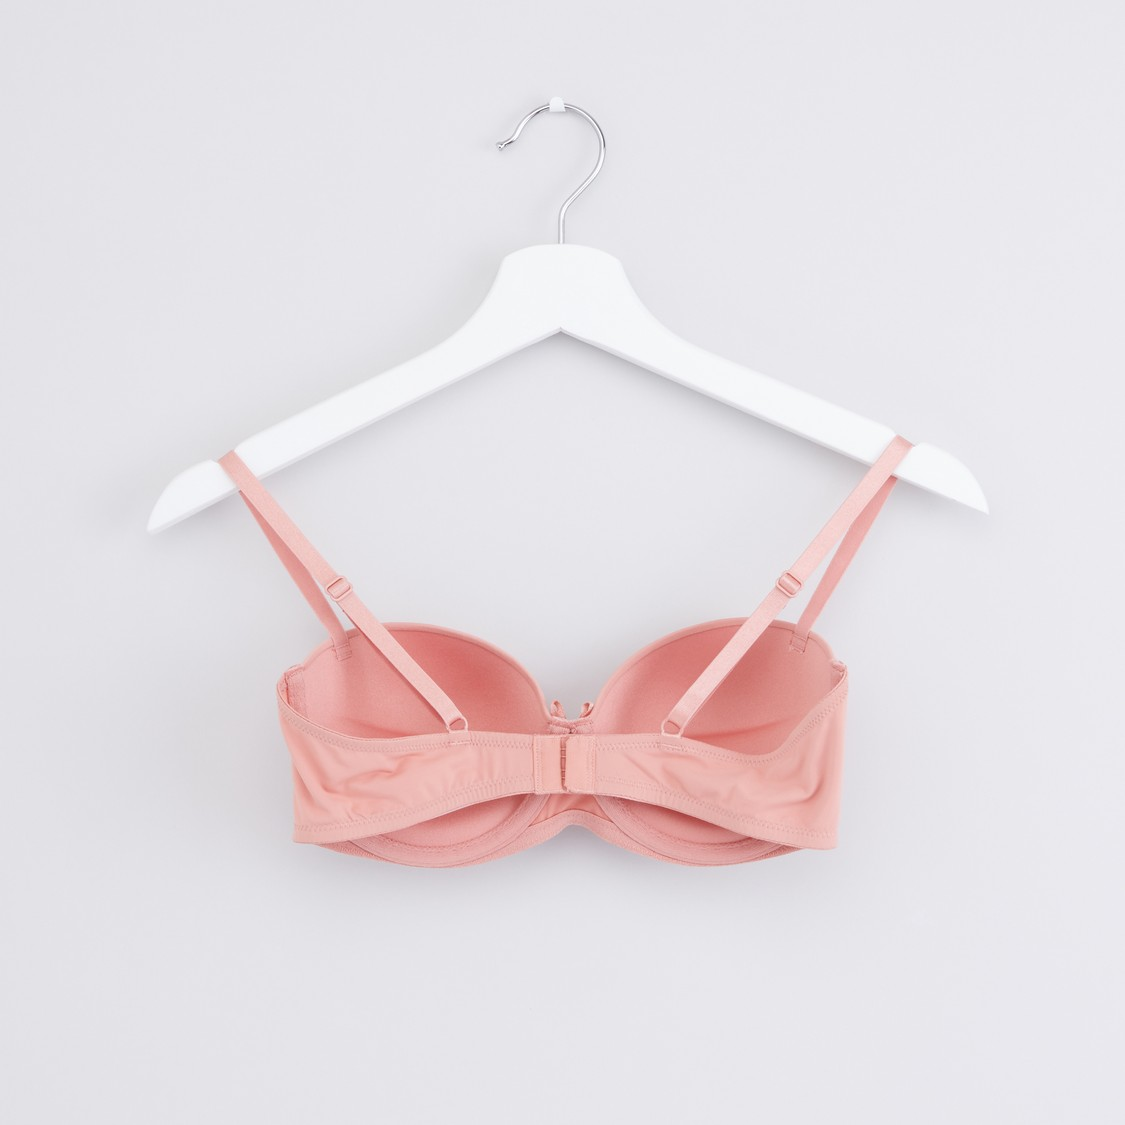 Padded Balconette Bra with Hook and Eye Closure - Set of 2